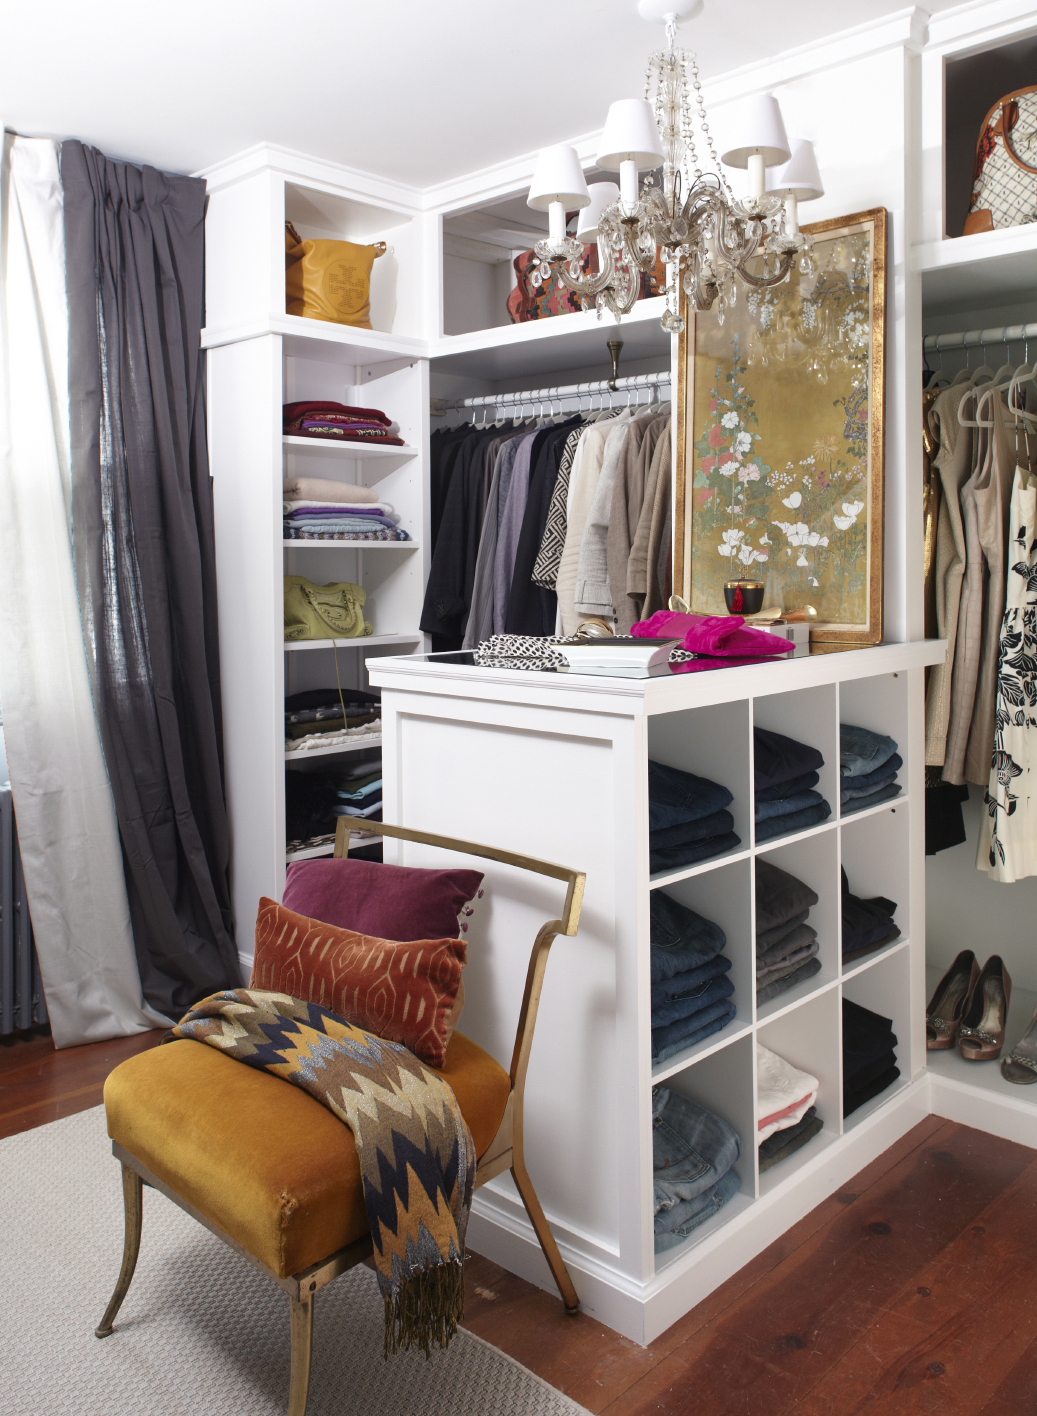 Dressing Room Ideas 20 Walk In Wardrobe Ideas Creatistic